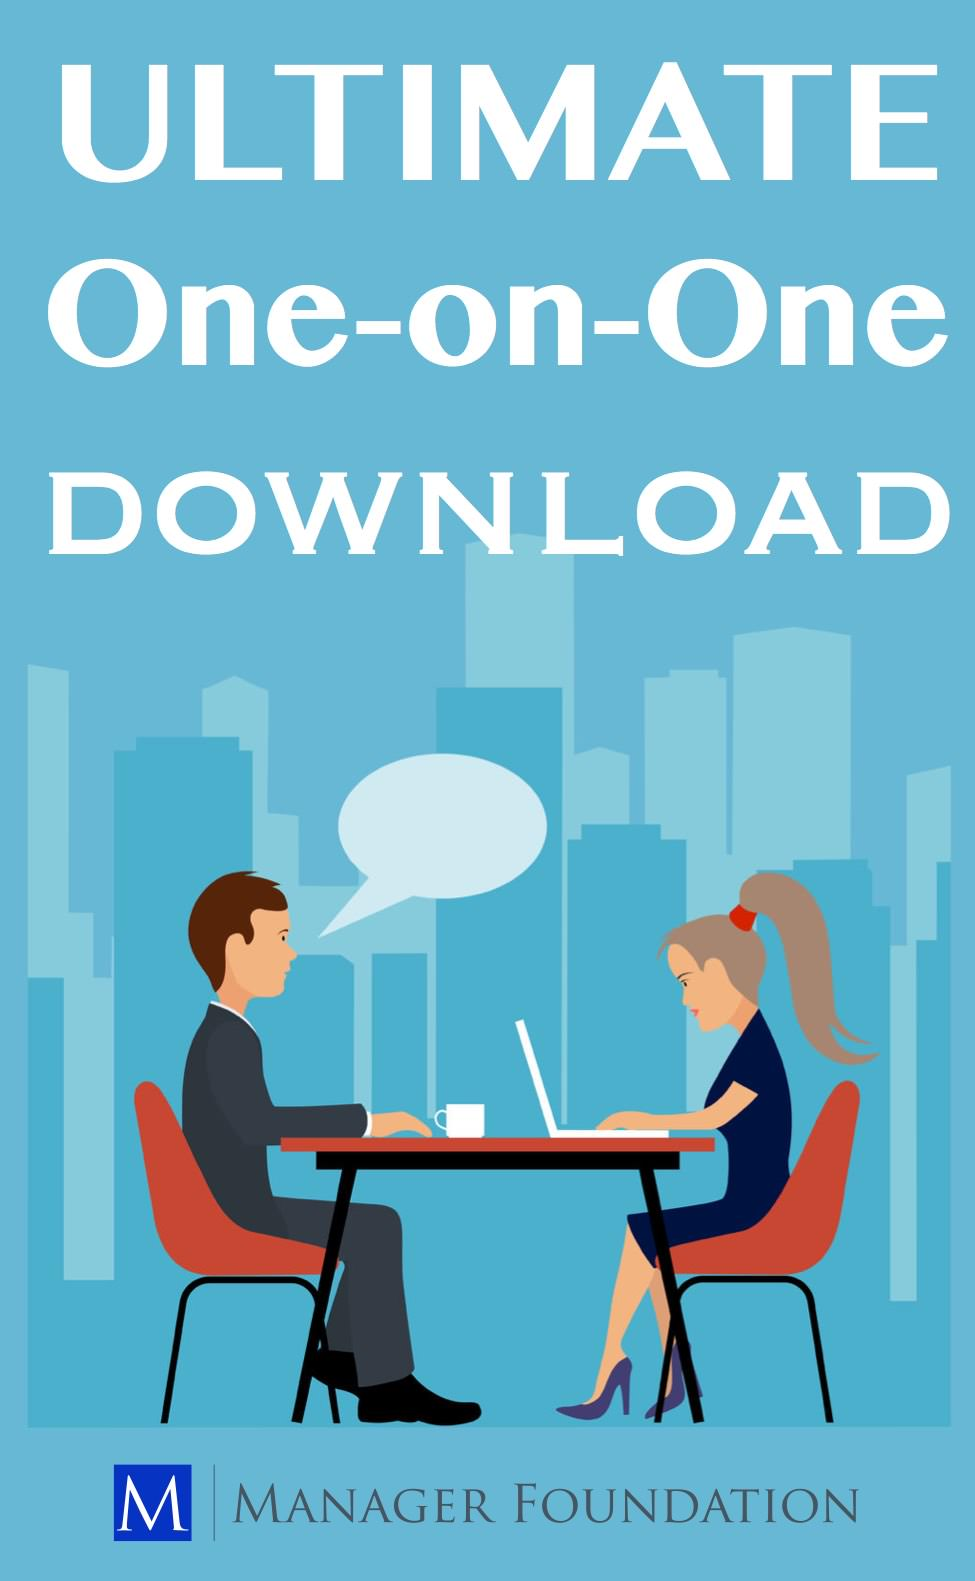 One-on-One template for download